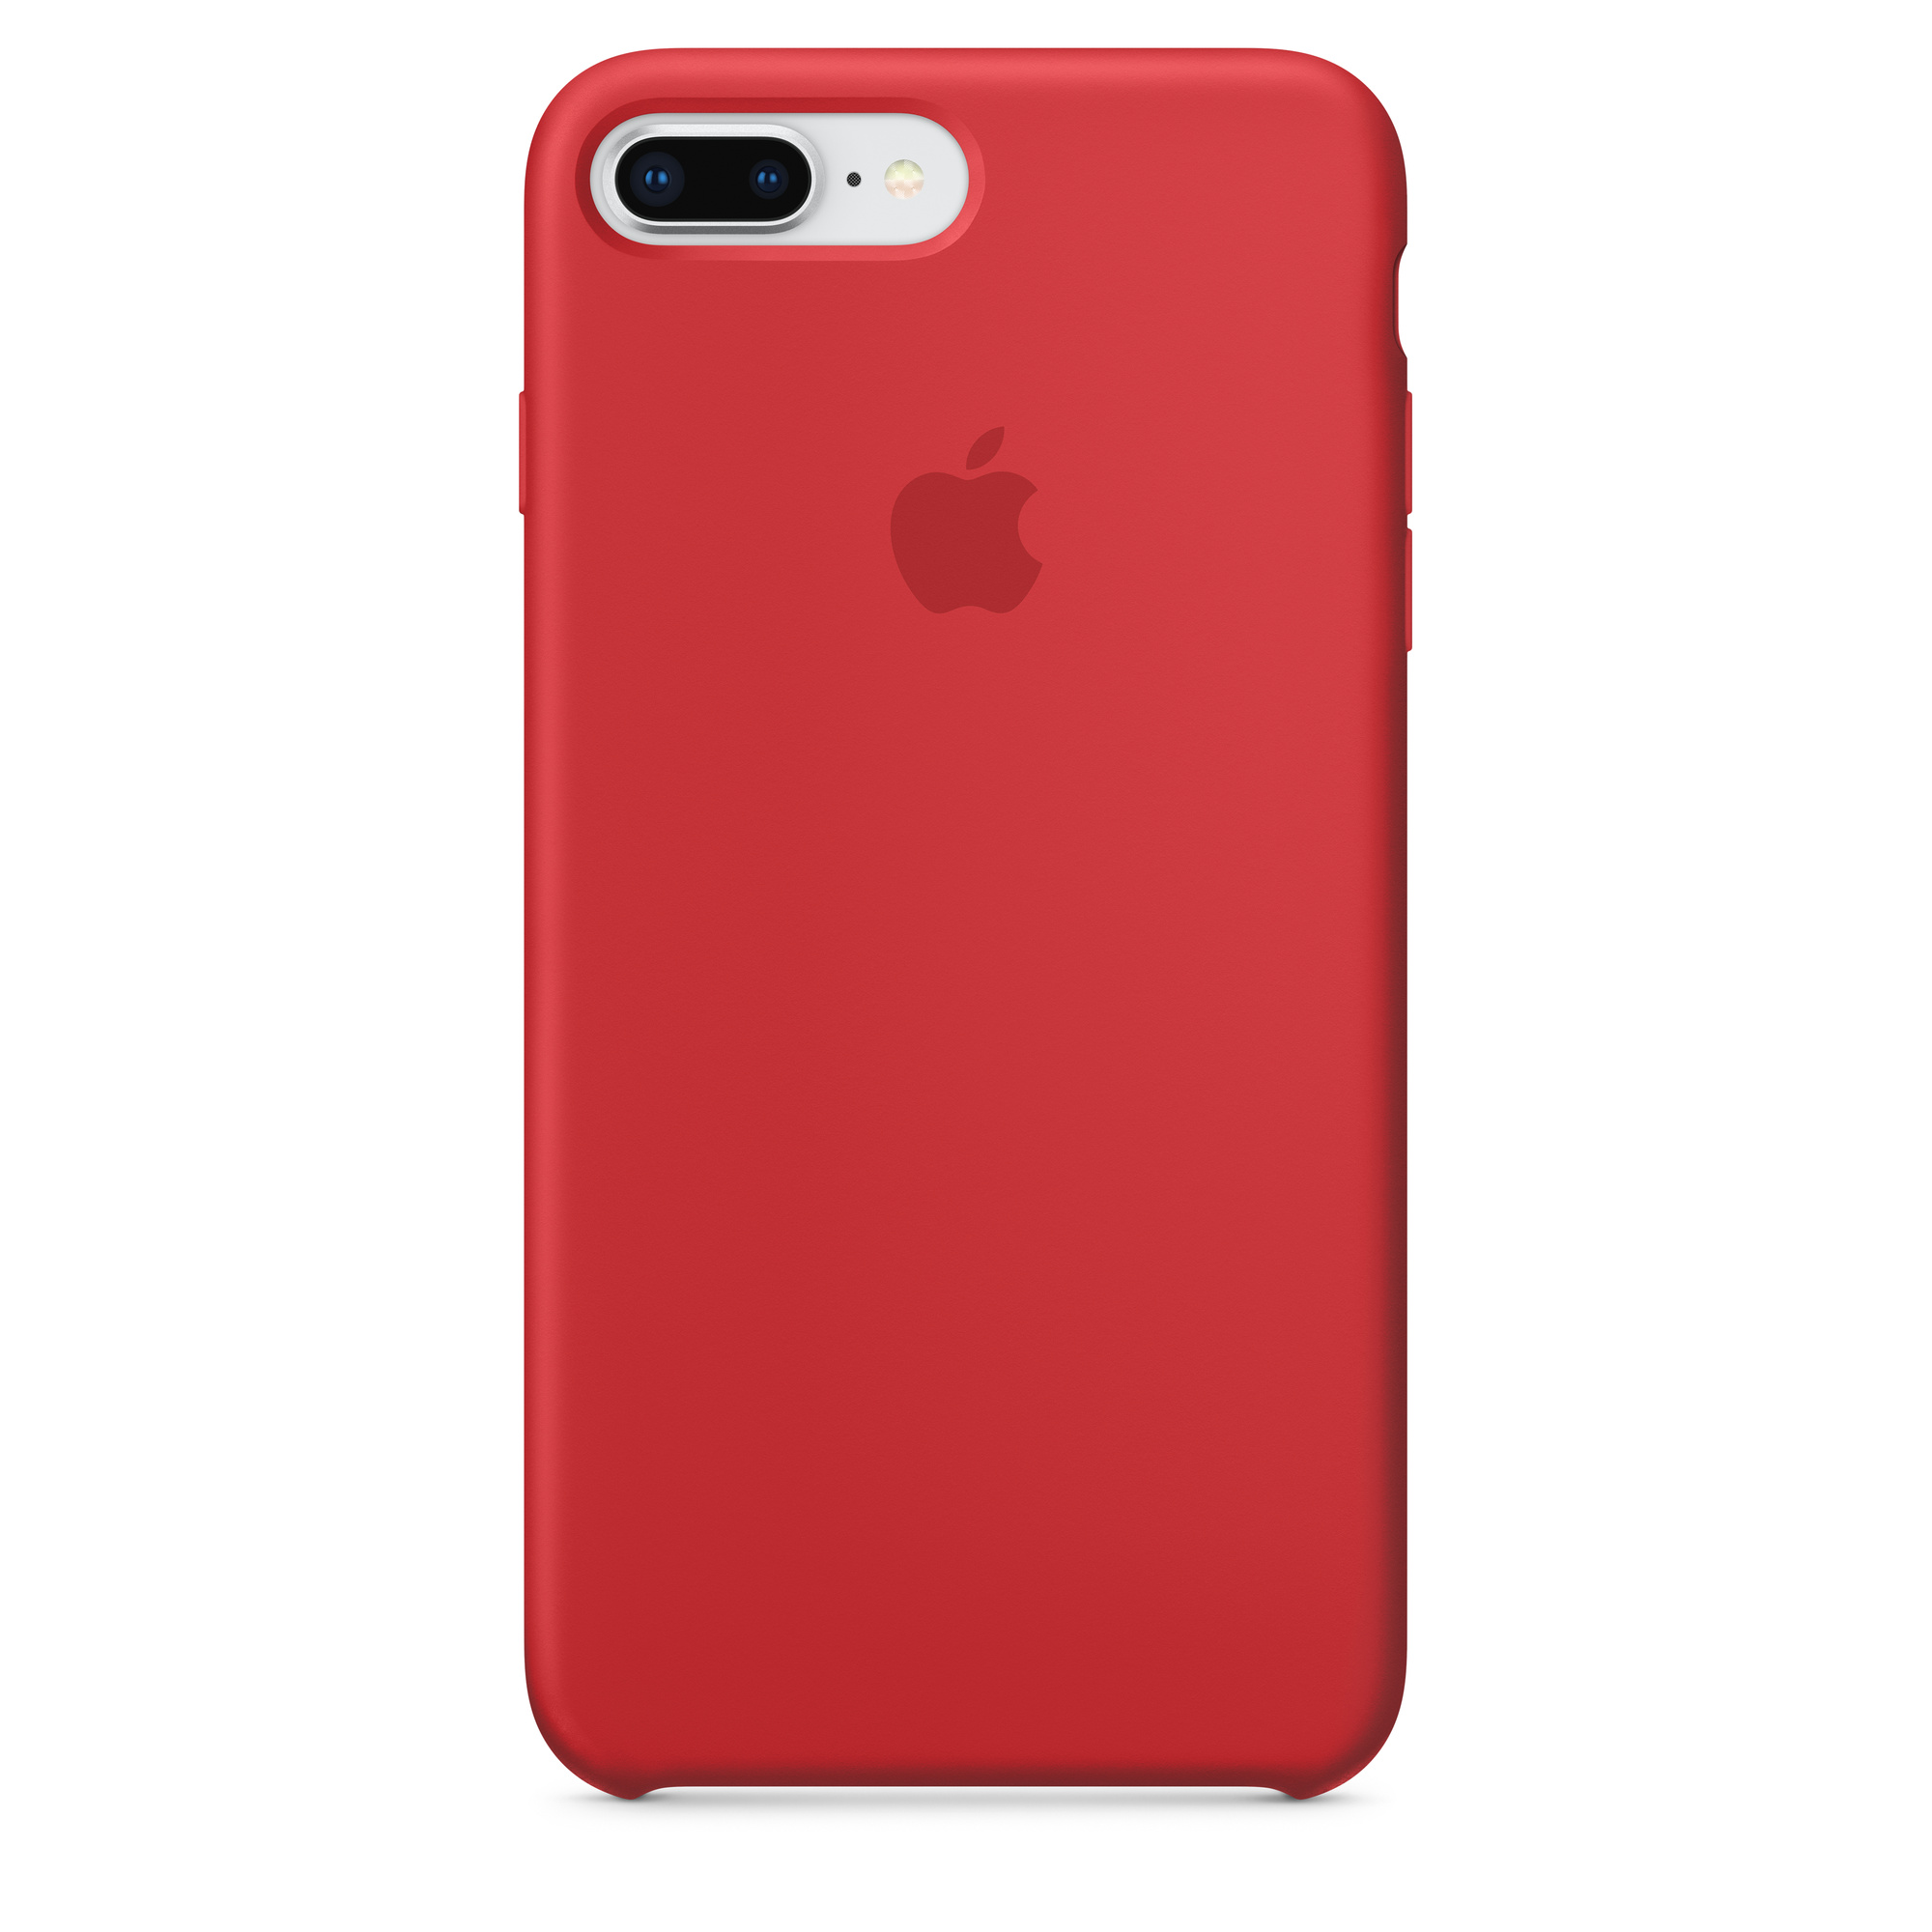 sports shoes 0e3a8 0d8ac iPhone 8 Plus / 7 Plus Silicone Case - (PRODUCT)RED